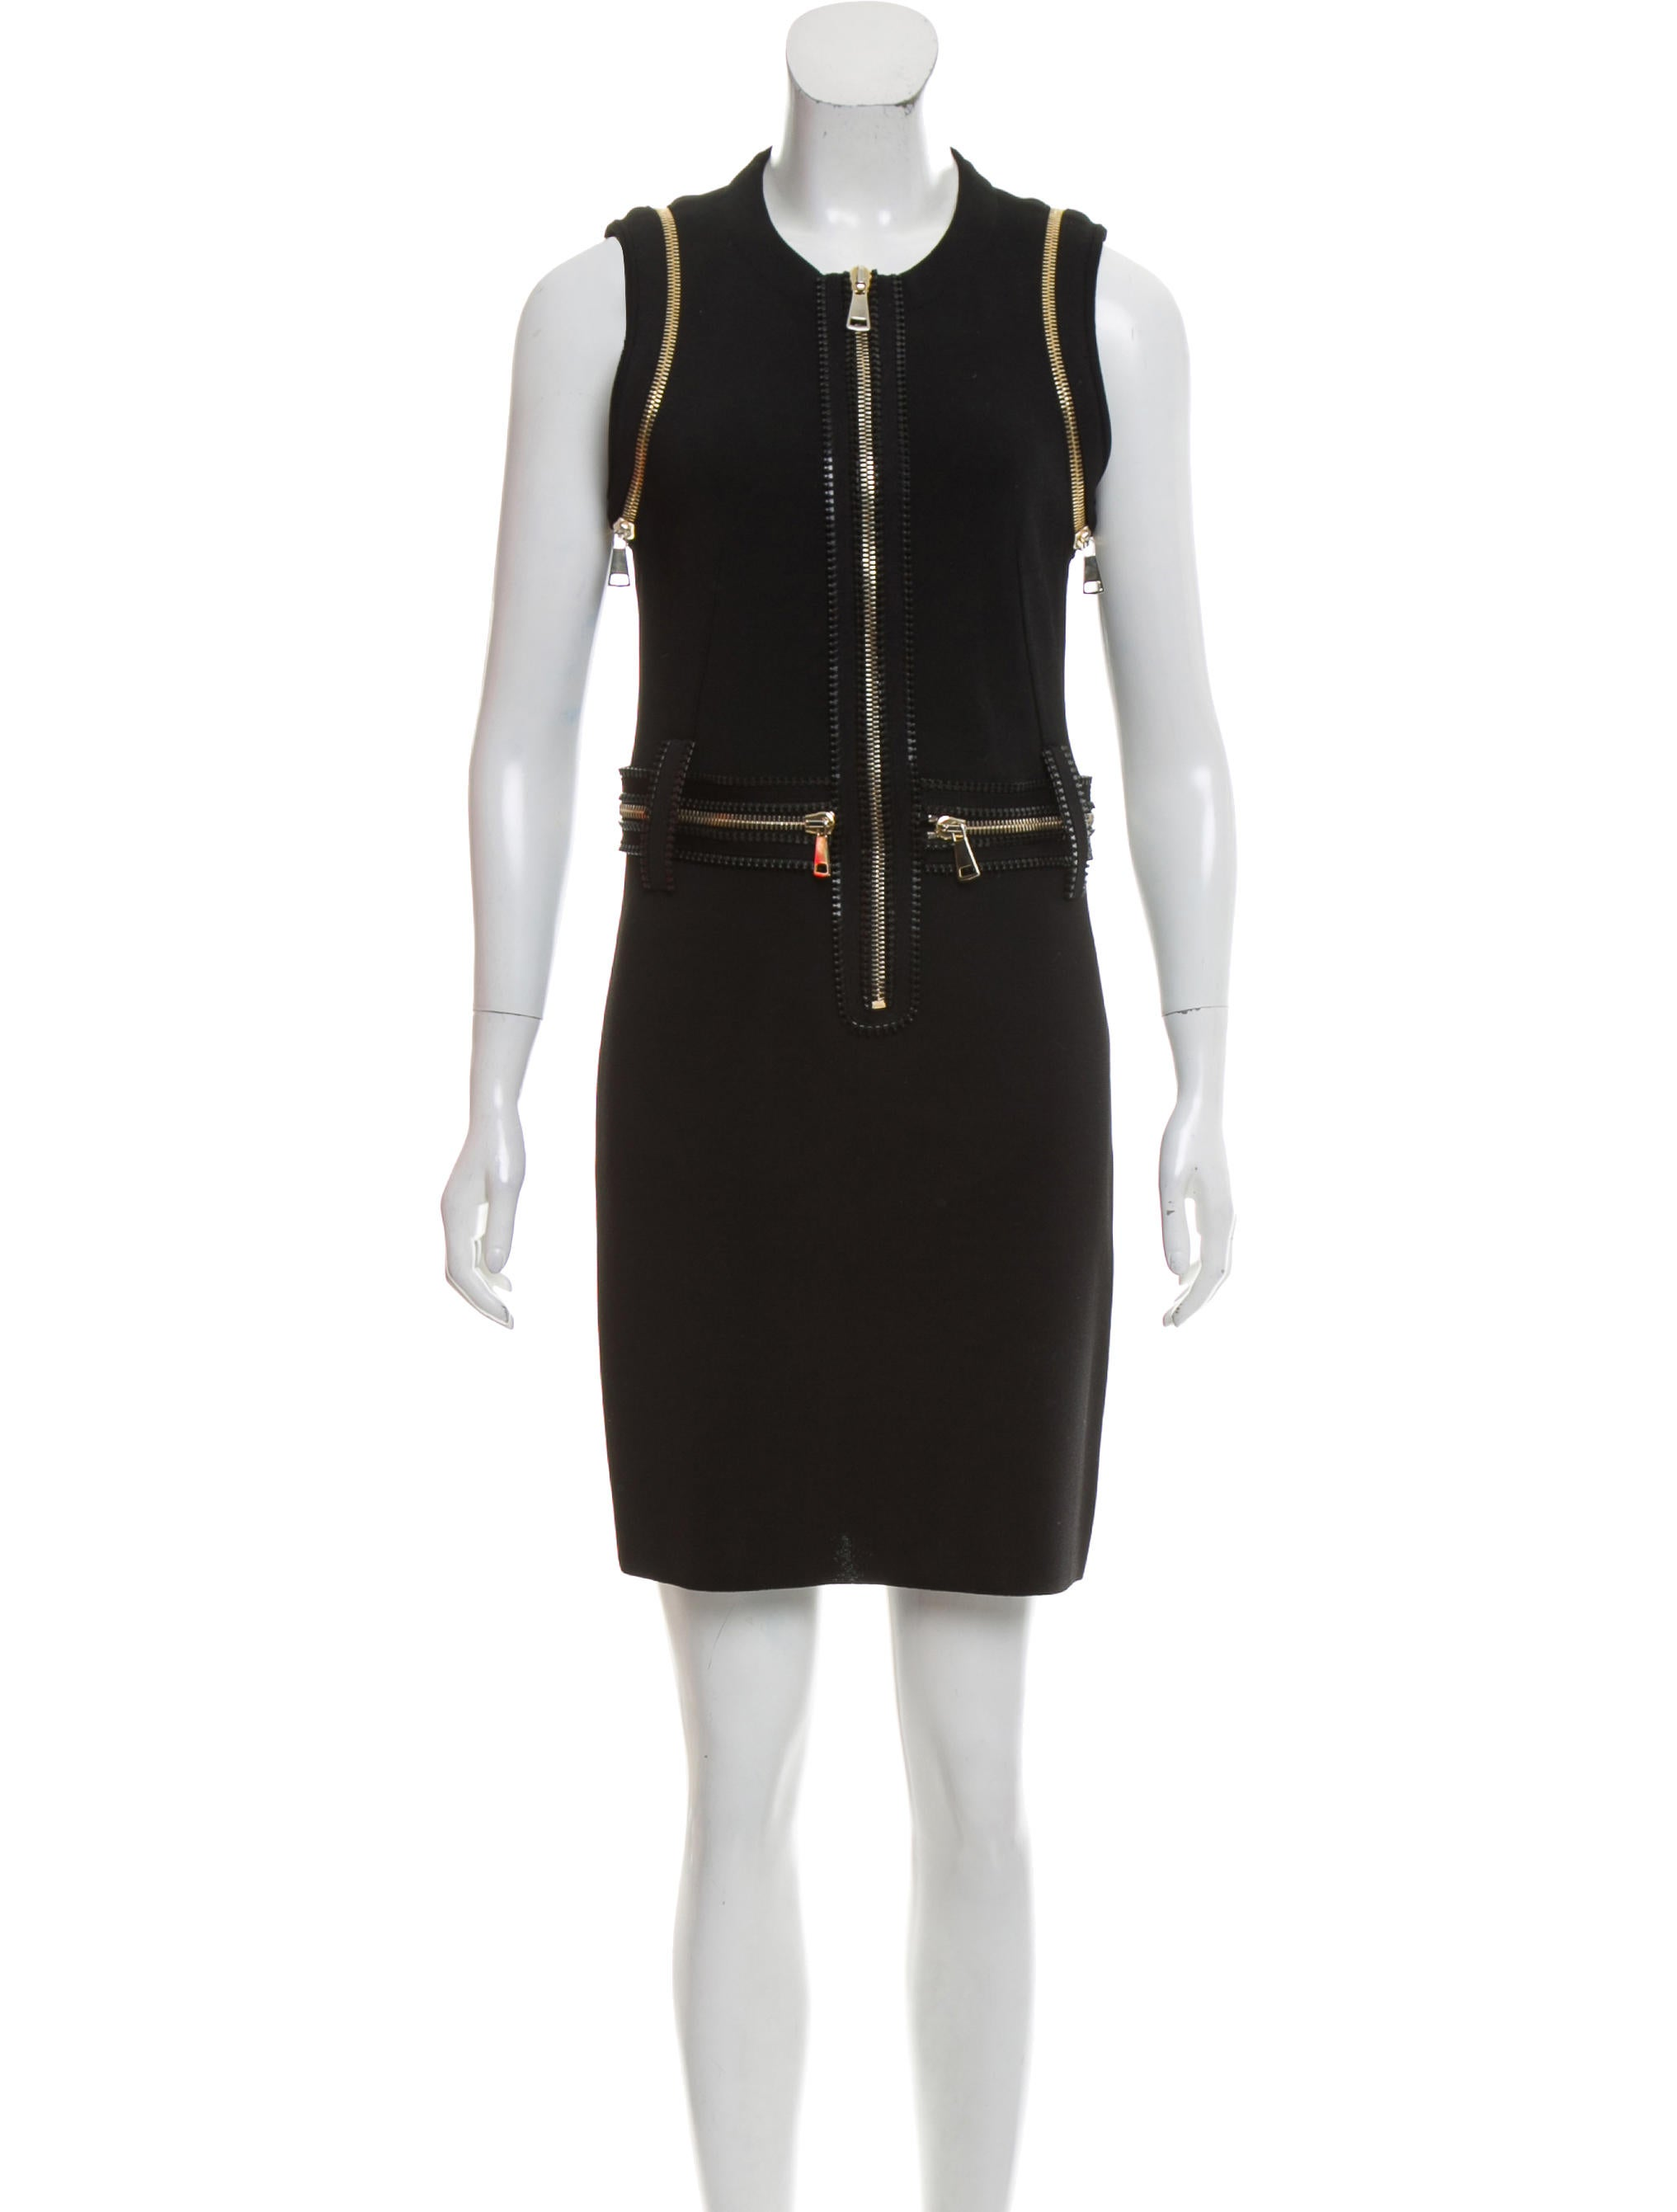 Givenchy Zipper Accented Mini Dress Clothing Giv43742